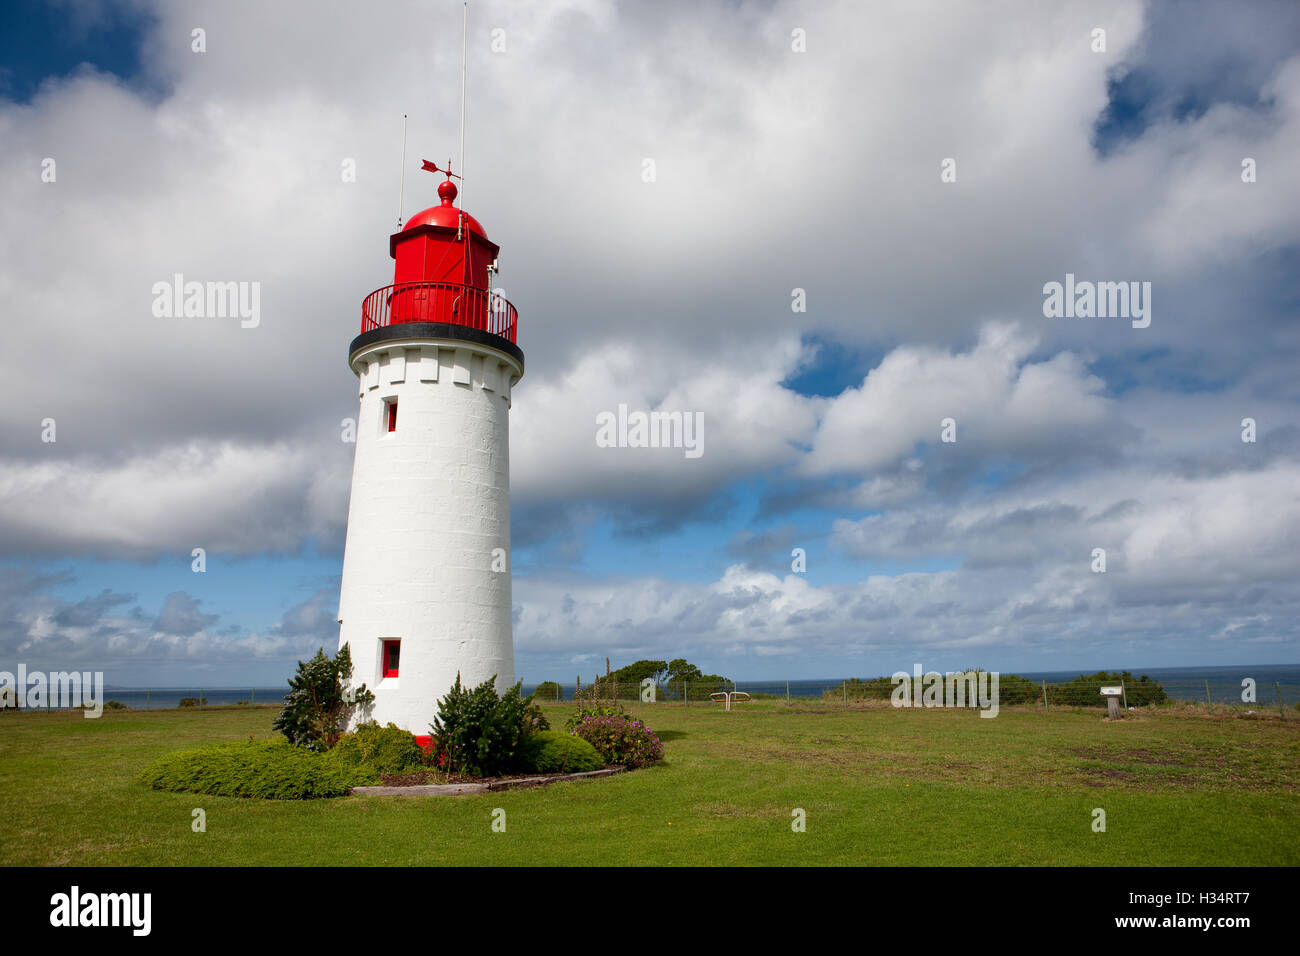 Whalers Bluff Lighthouse, at the port of Portland, Victoria, Australia. - Stock Image